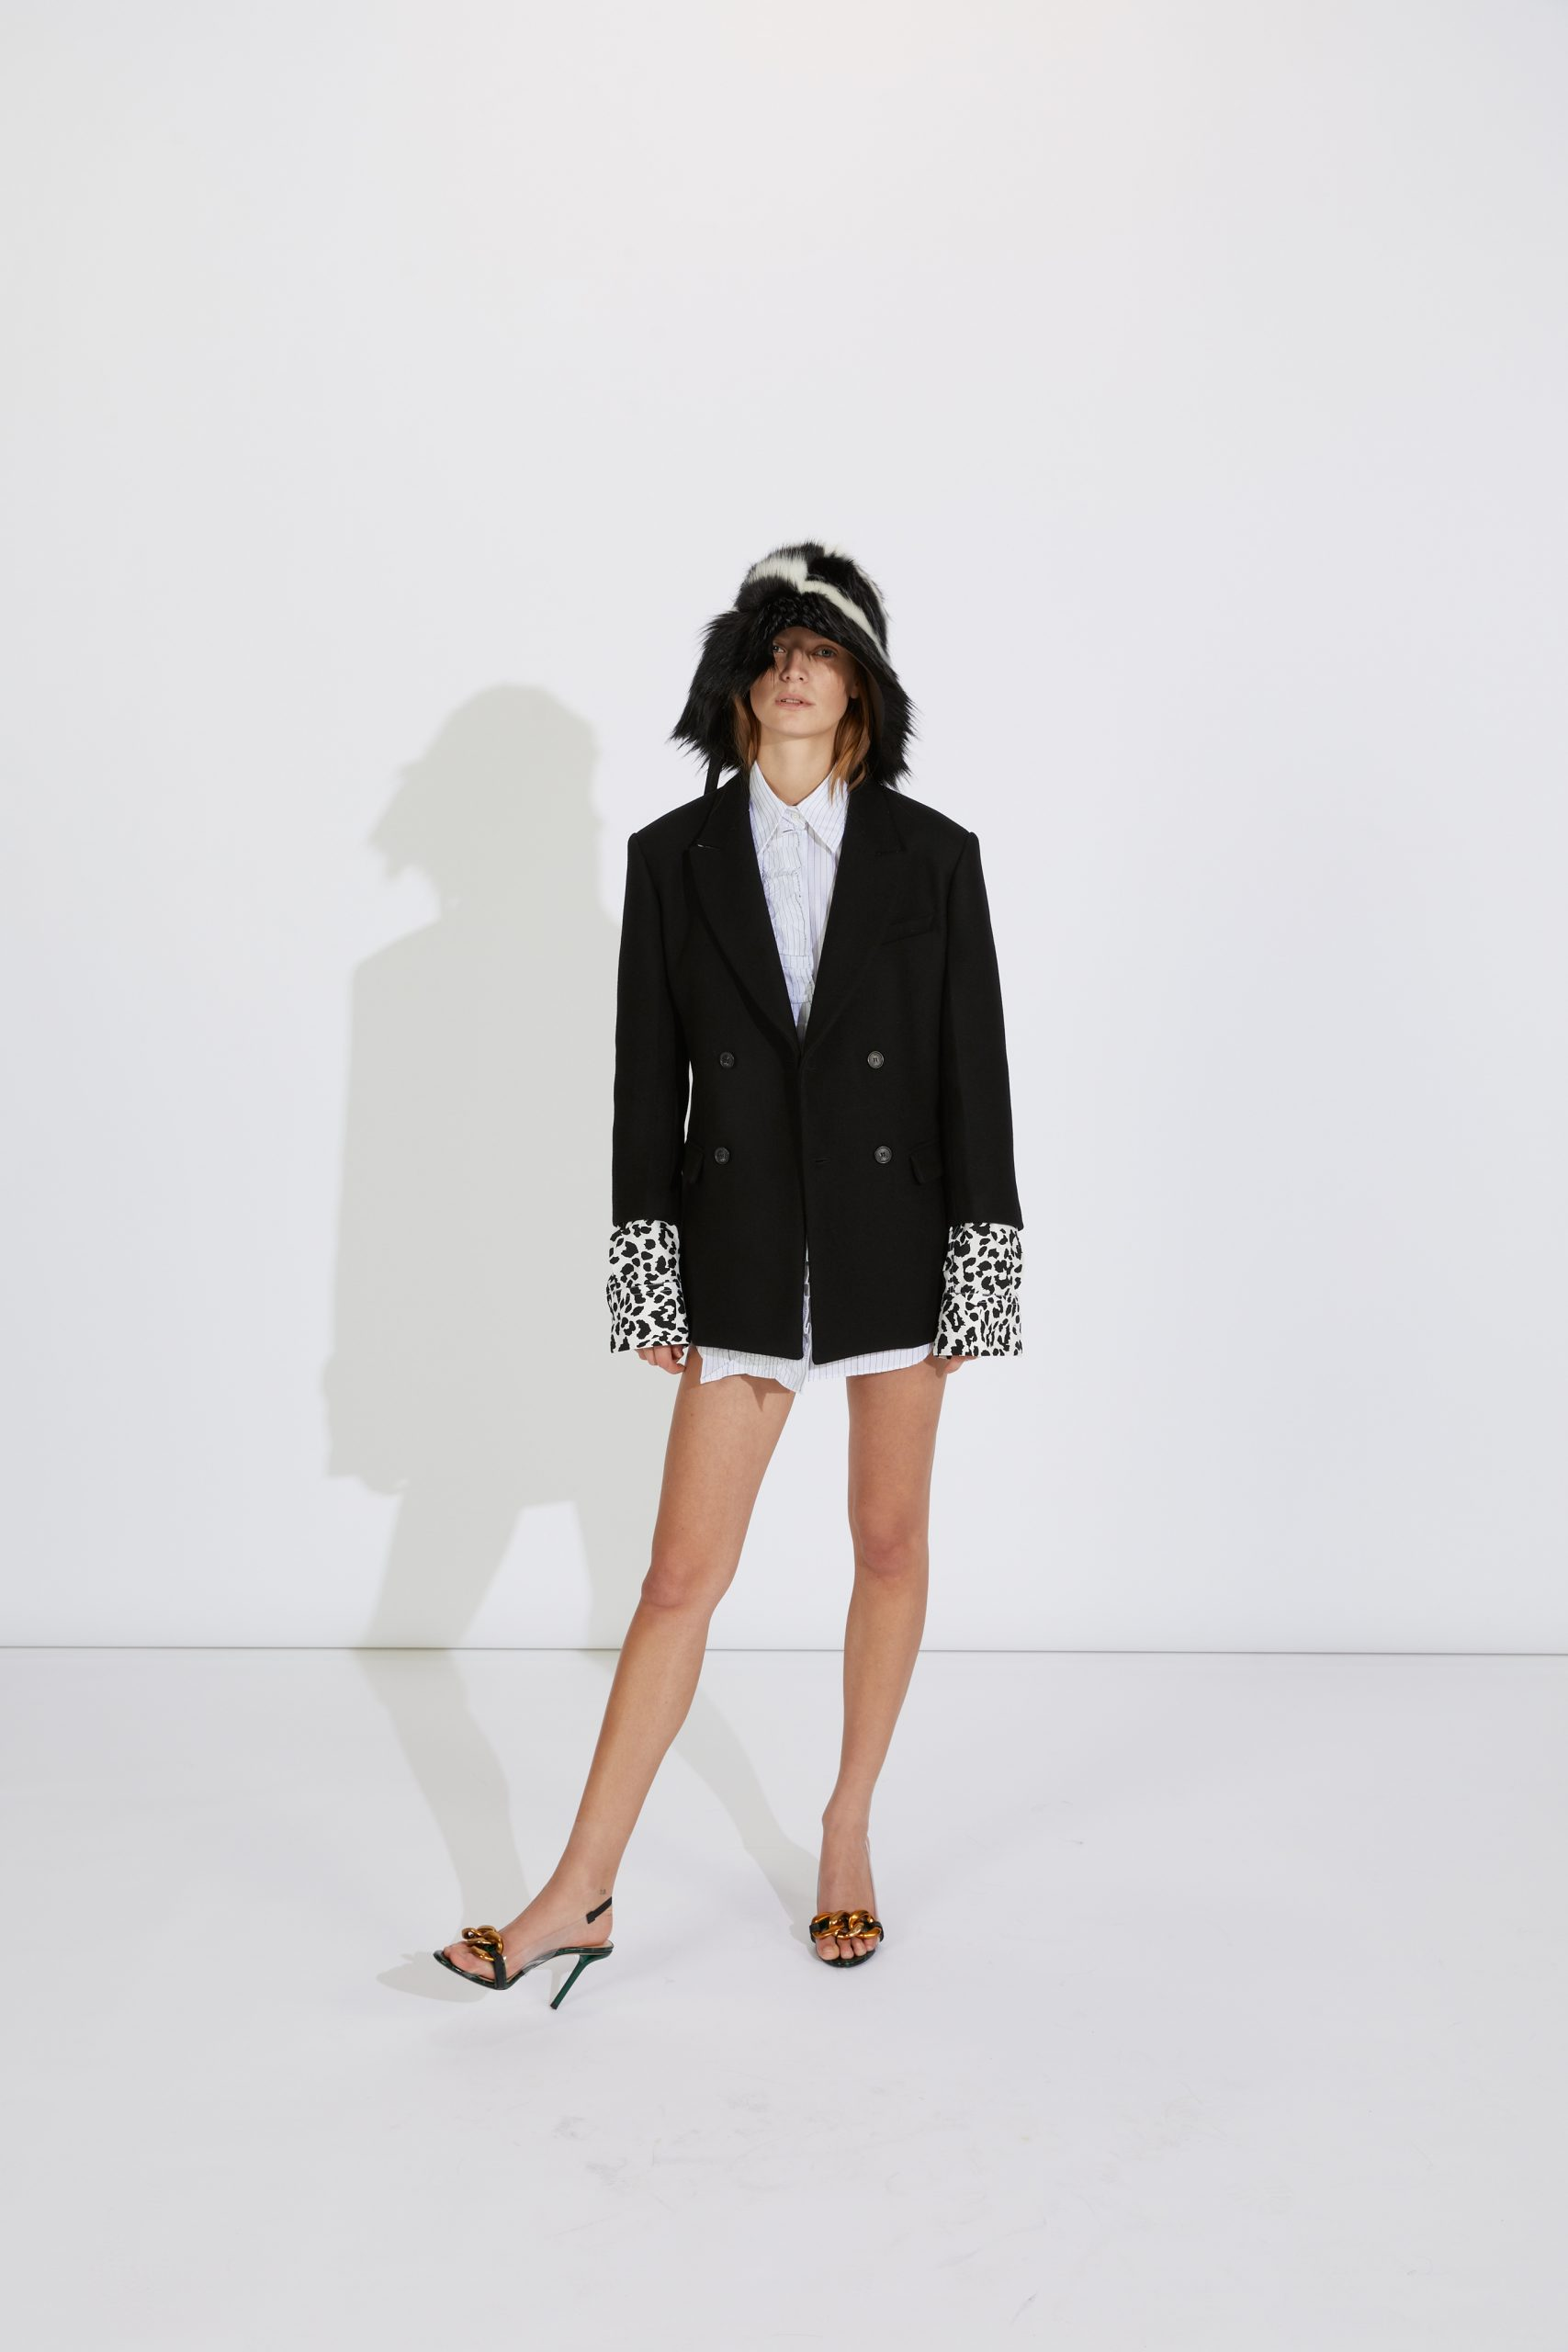 N°21 Pre-Fall 2020 Fashion Collection Pictures